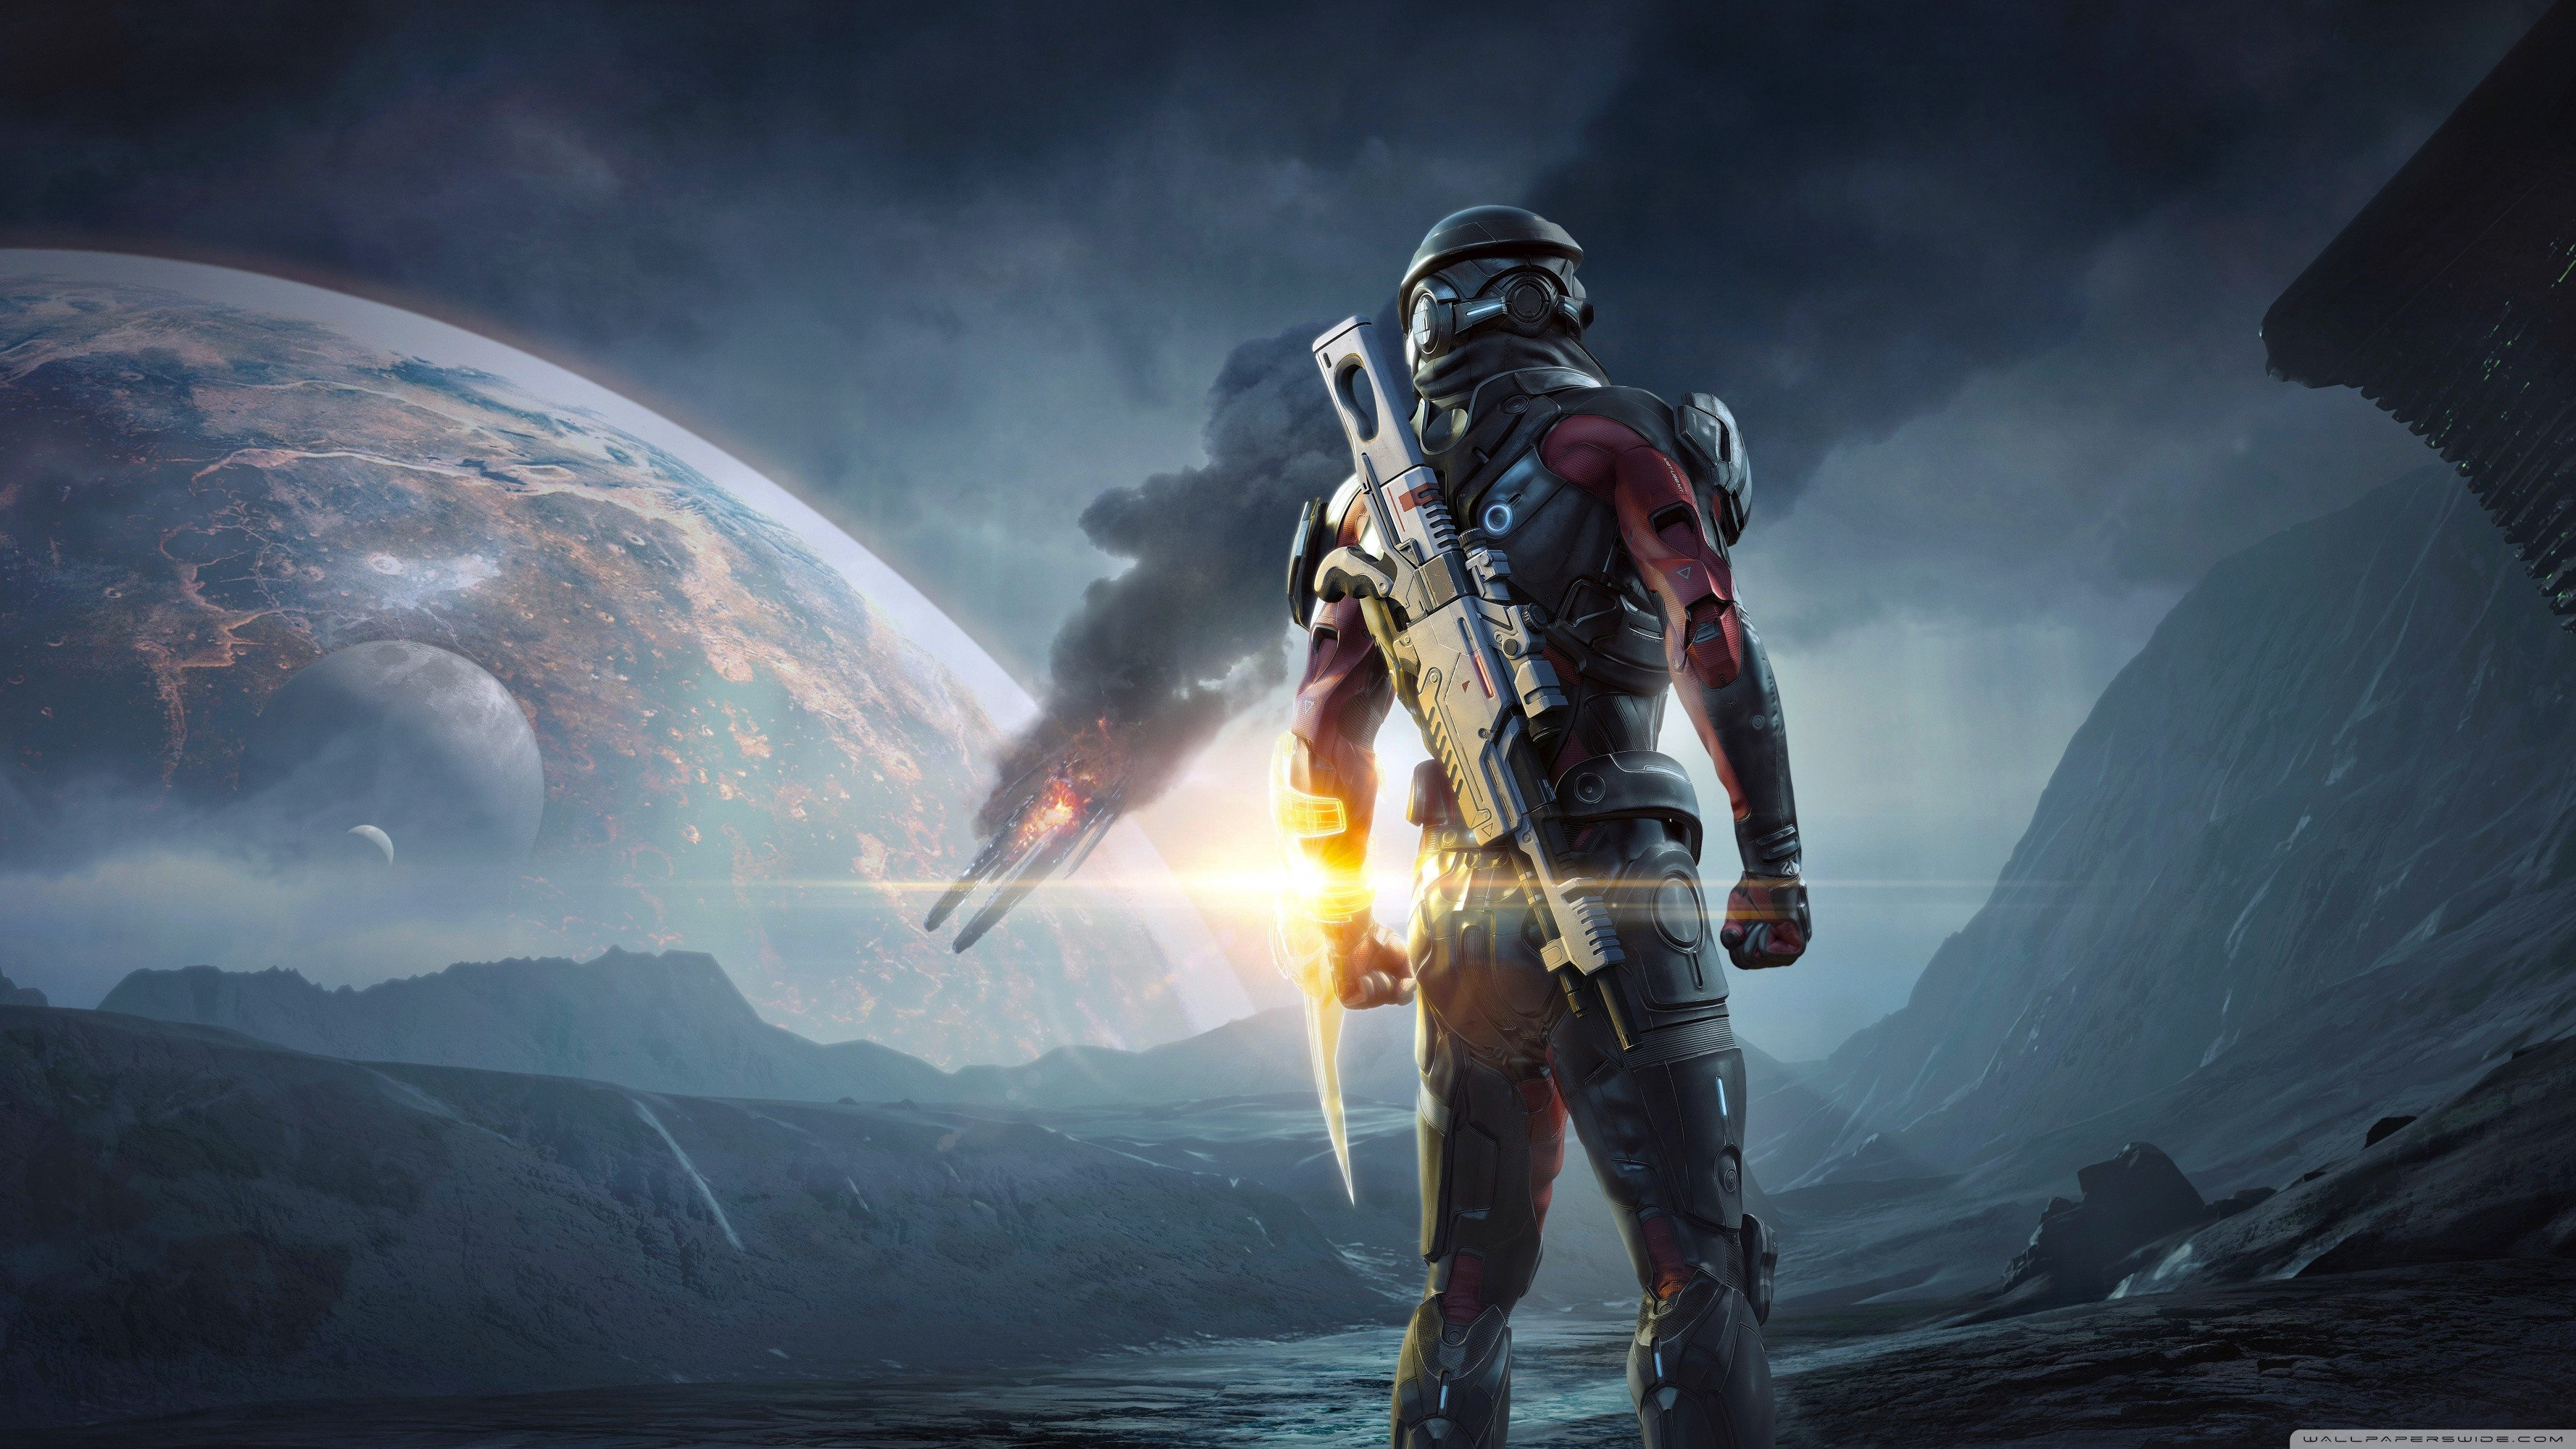 Mass Effect Andromeda 2017 video game HD desktop wallpaper